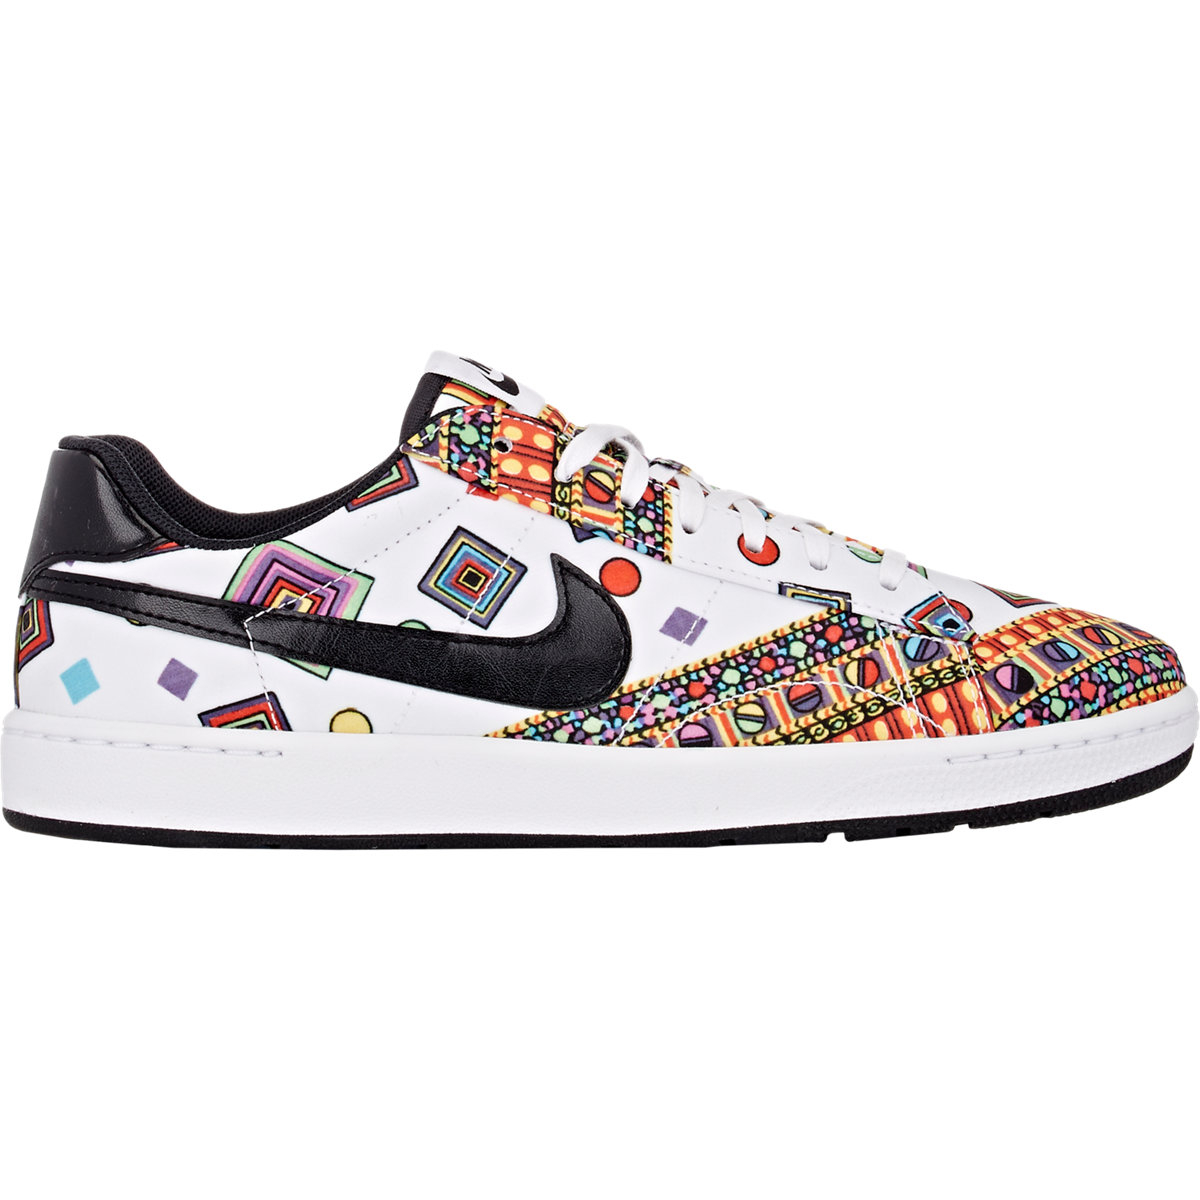 lyst nike women 39 s tennis classic ultra liberty qs sneakers in white. Black Bedroom Furniture Sets. Home Design Ideas